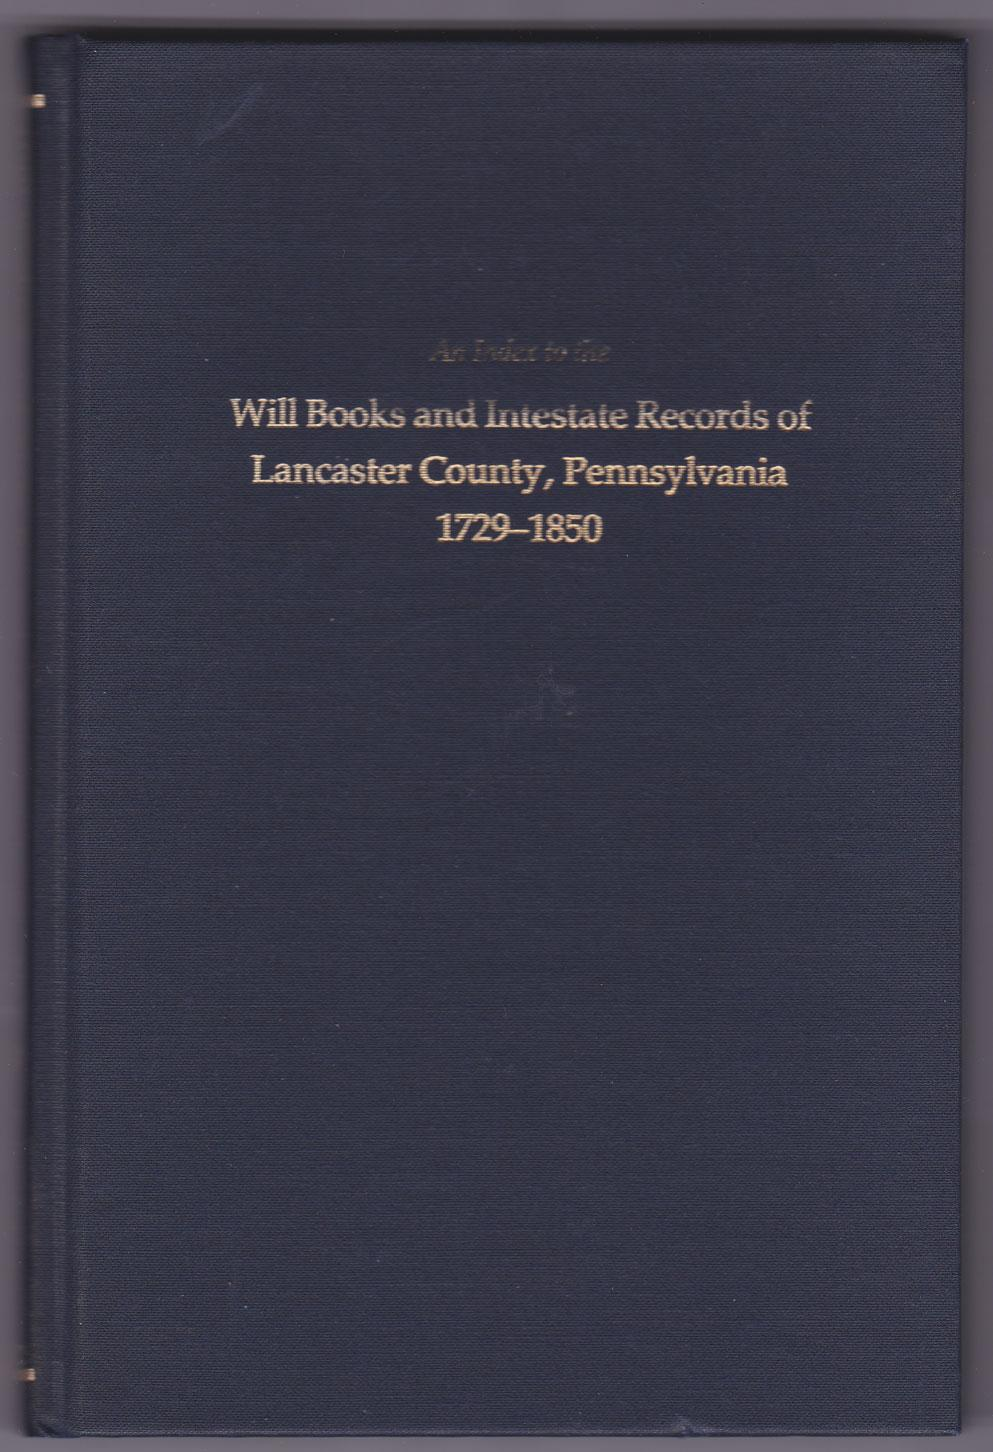 1729-1850 An Index to the Will Books and Intestate Records of Lancaster County with an Historical Sketch and Classified Bibliography Pennsylvania